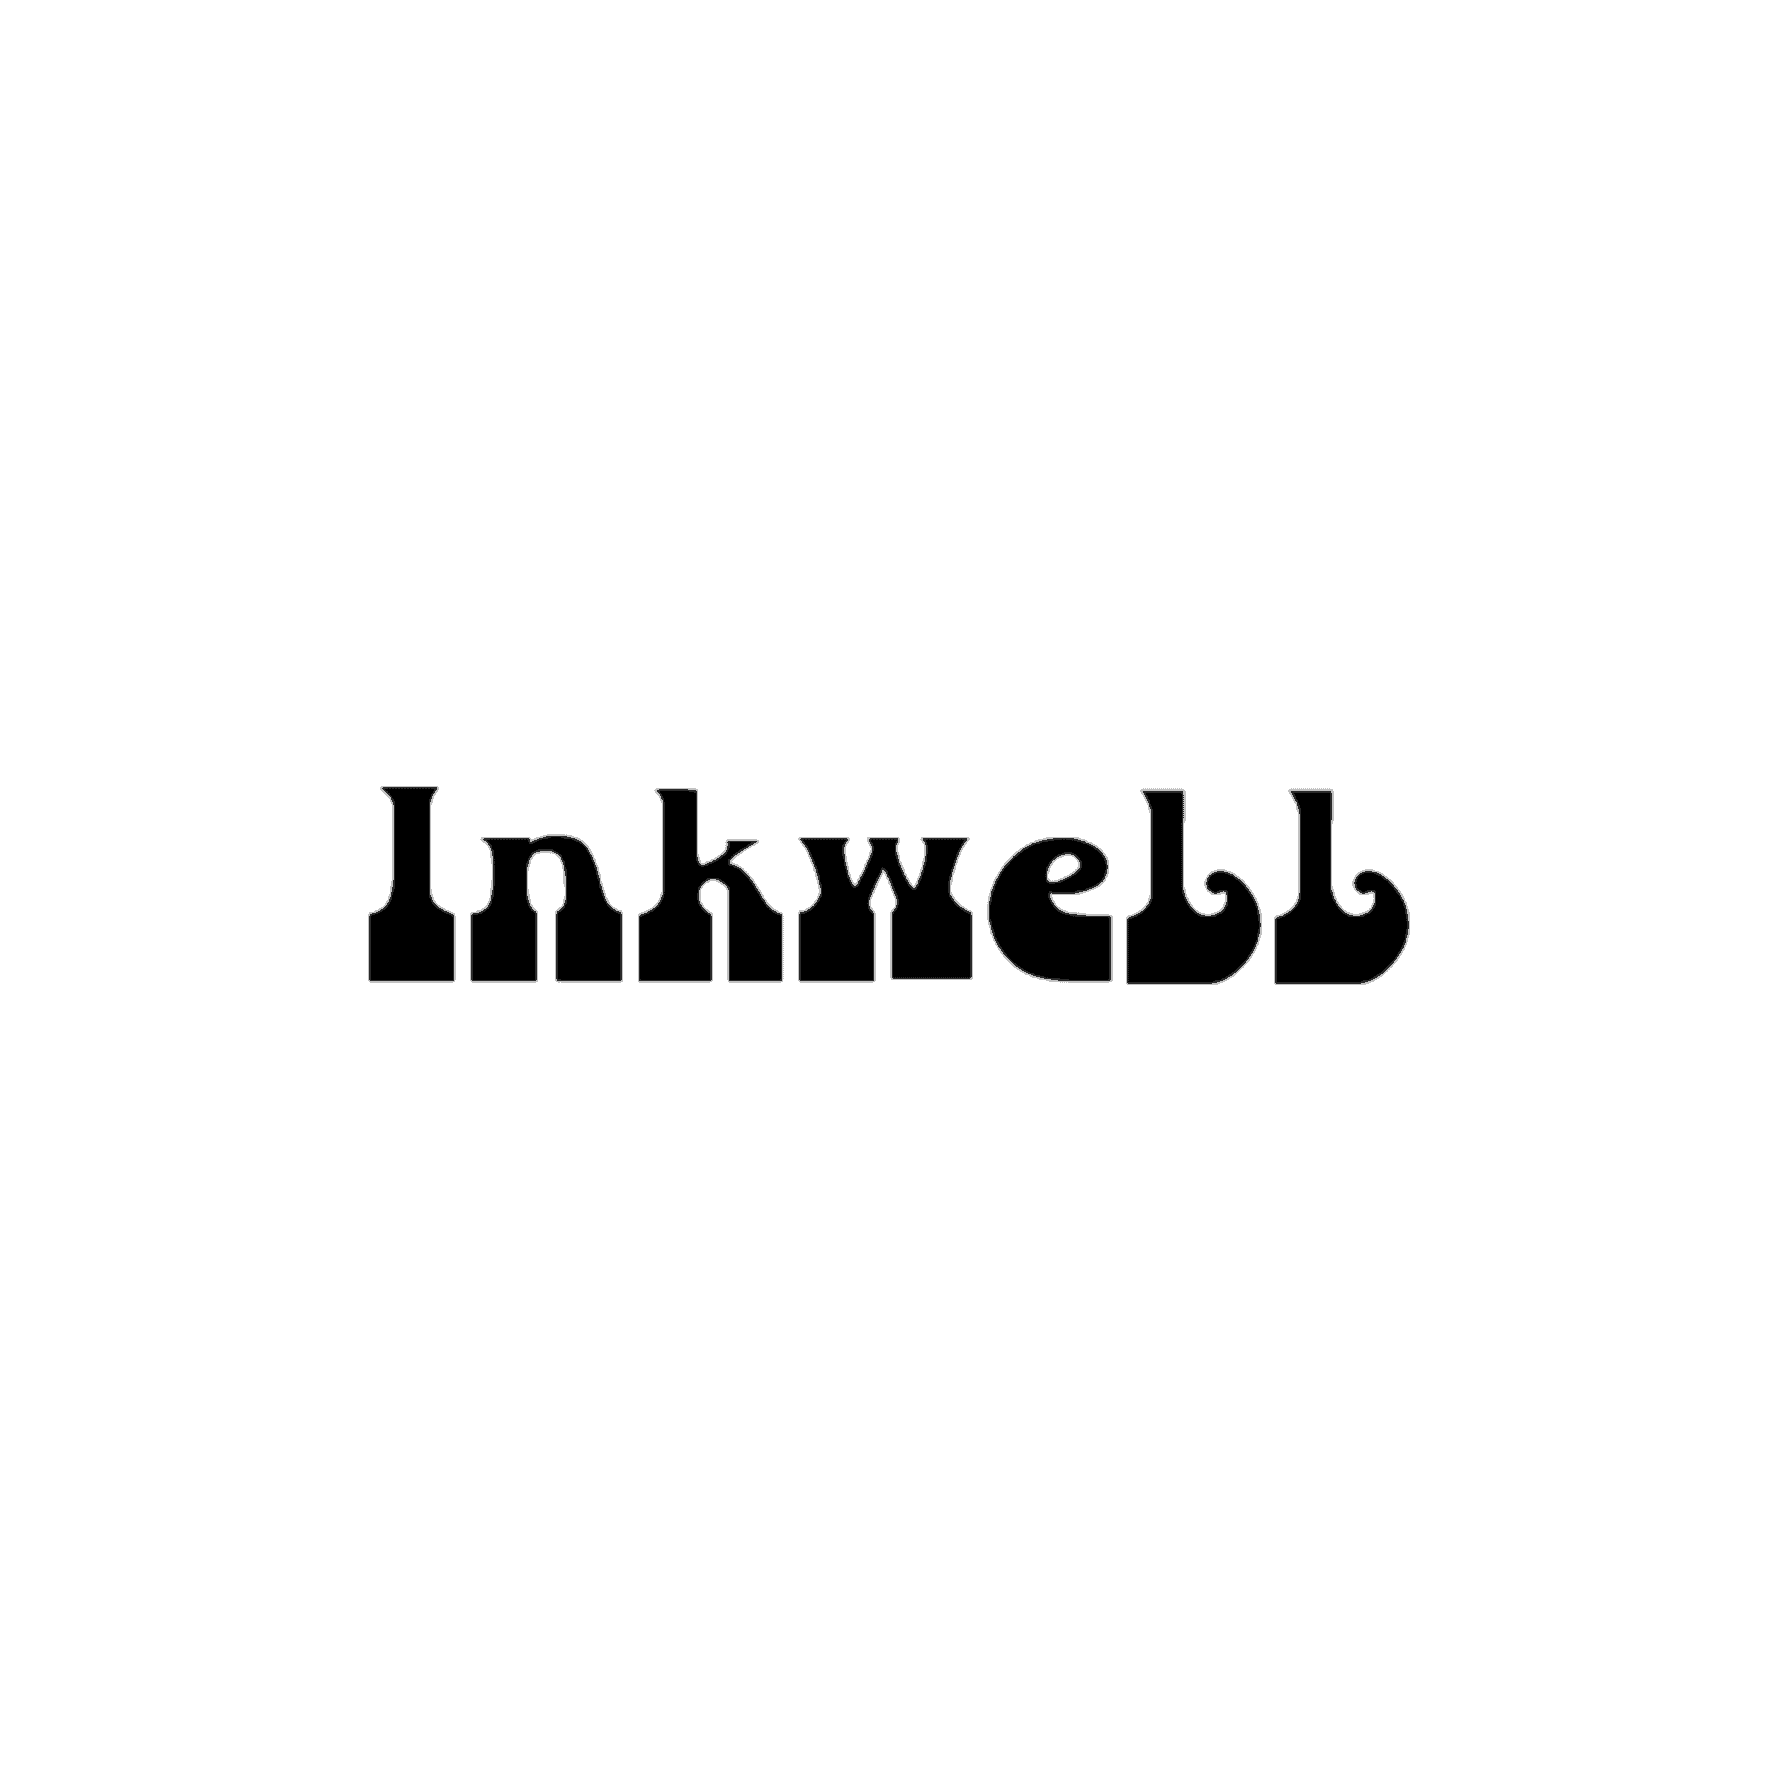 Download Inkwell font (typeface)